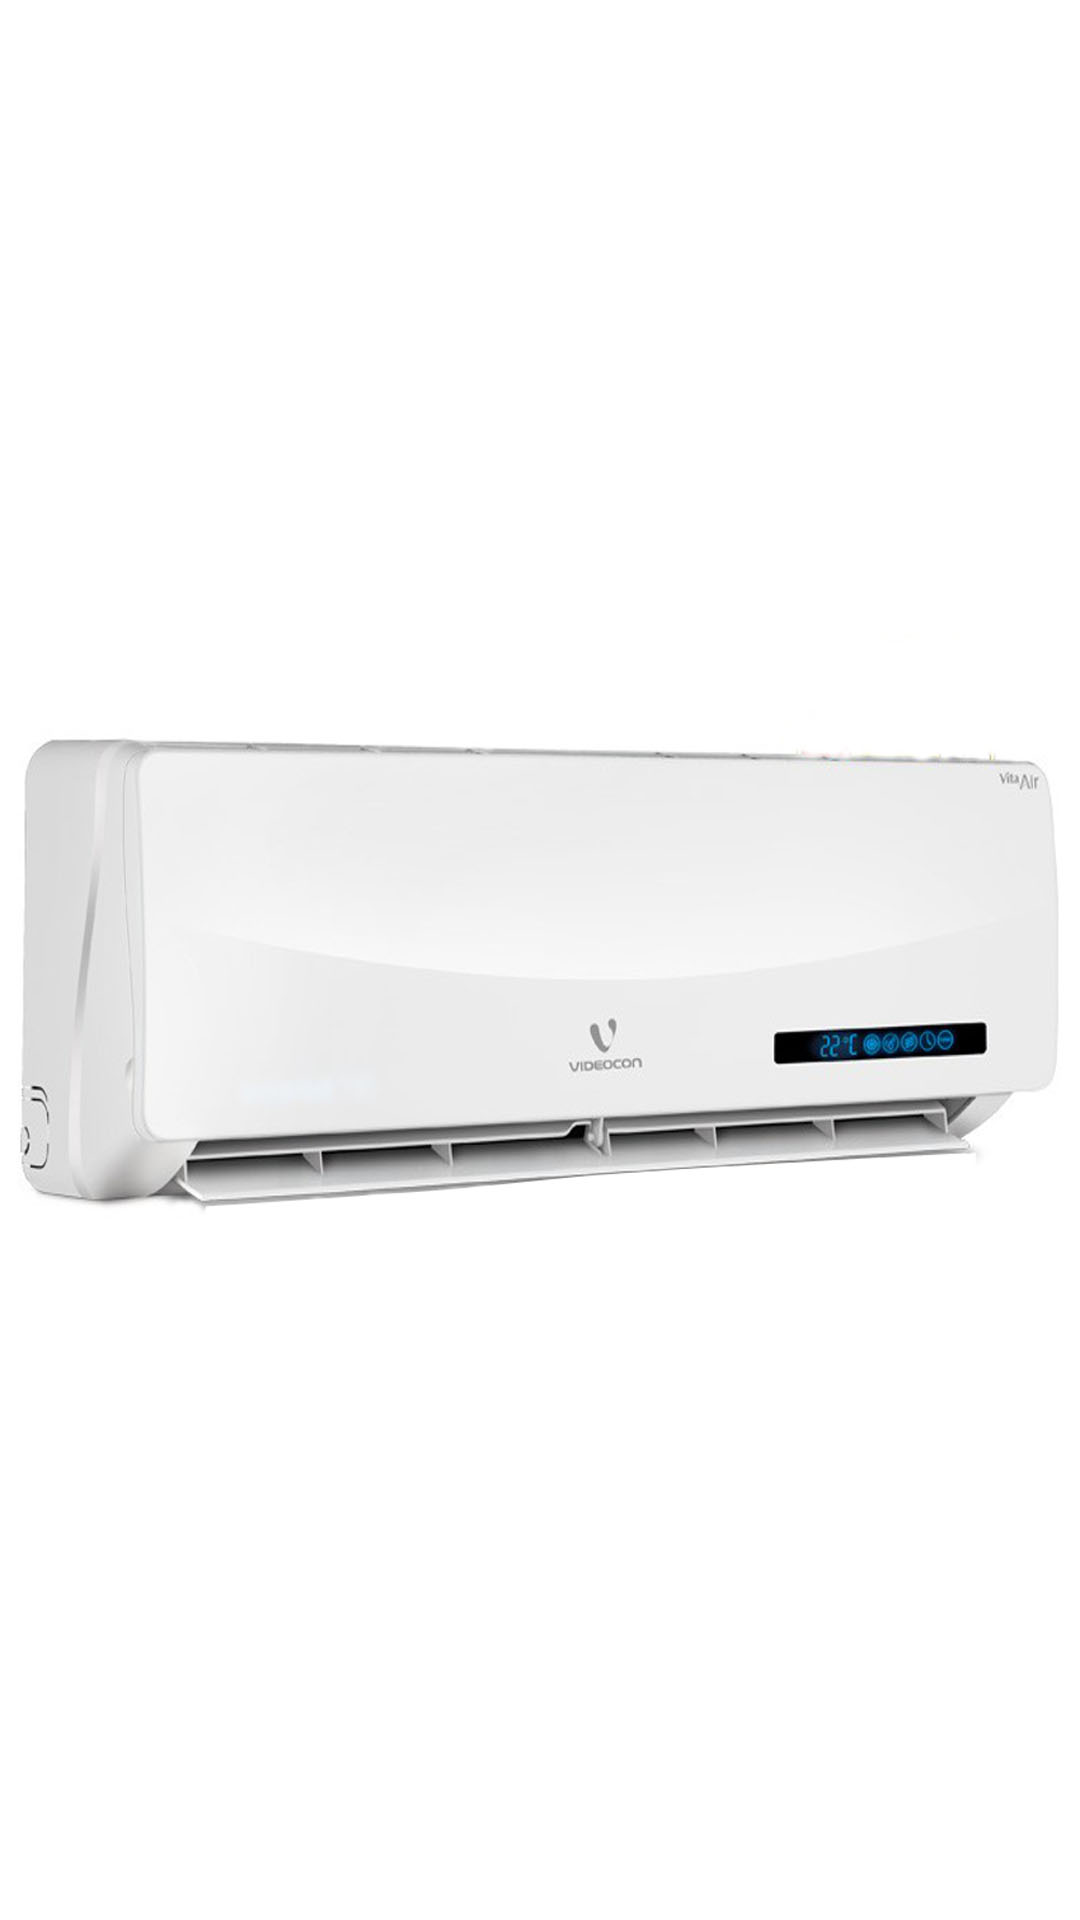 Videocon VSZ53.WV1-MDA Split AC (1.5 Ton, 3 Star Rating, White)